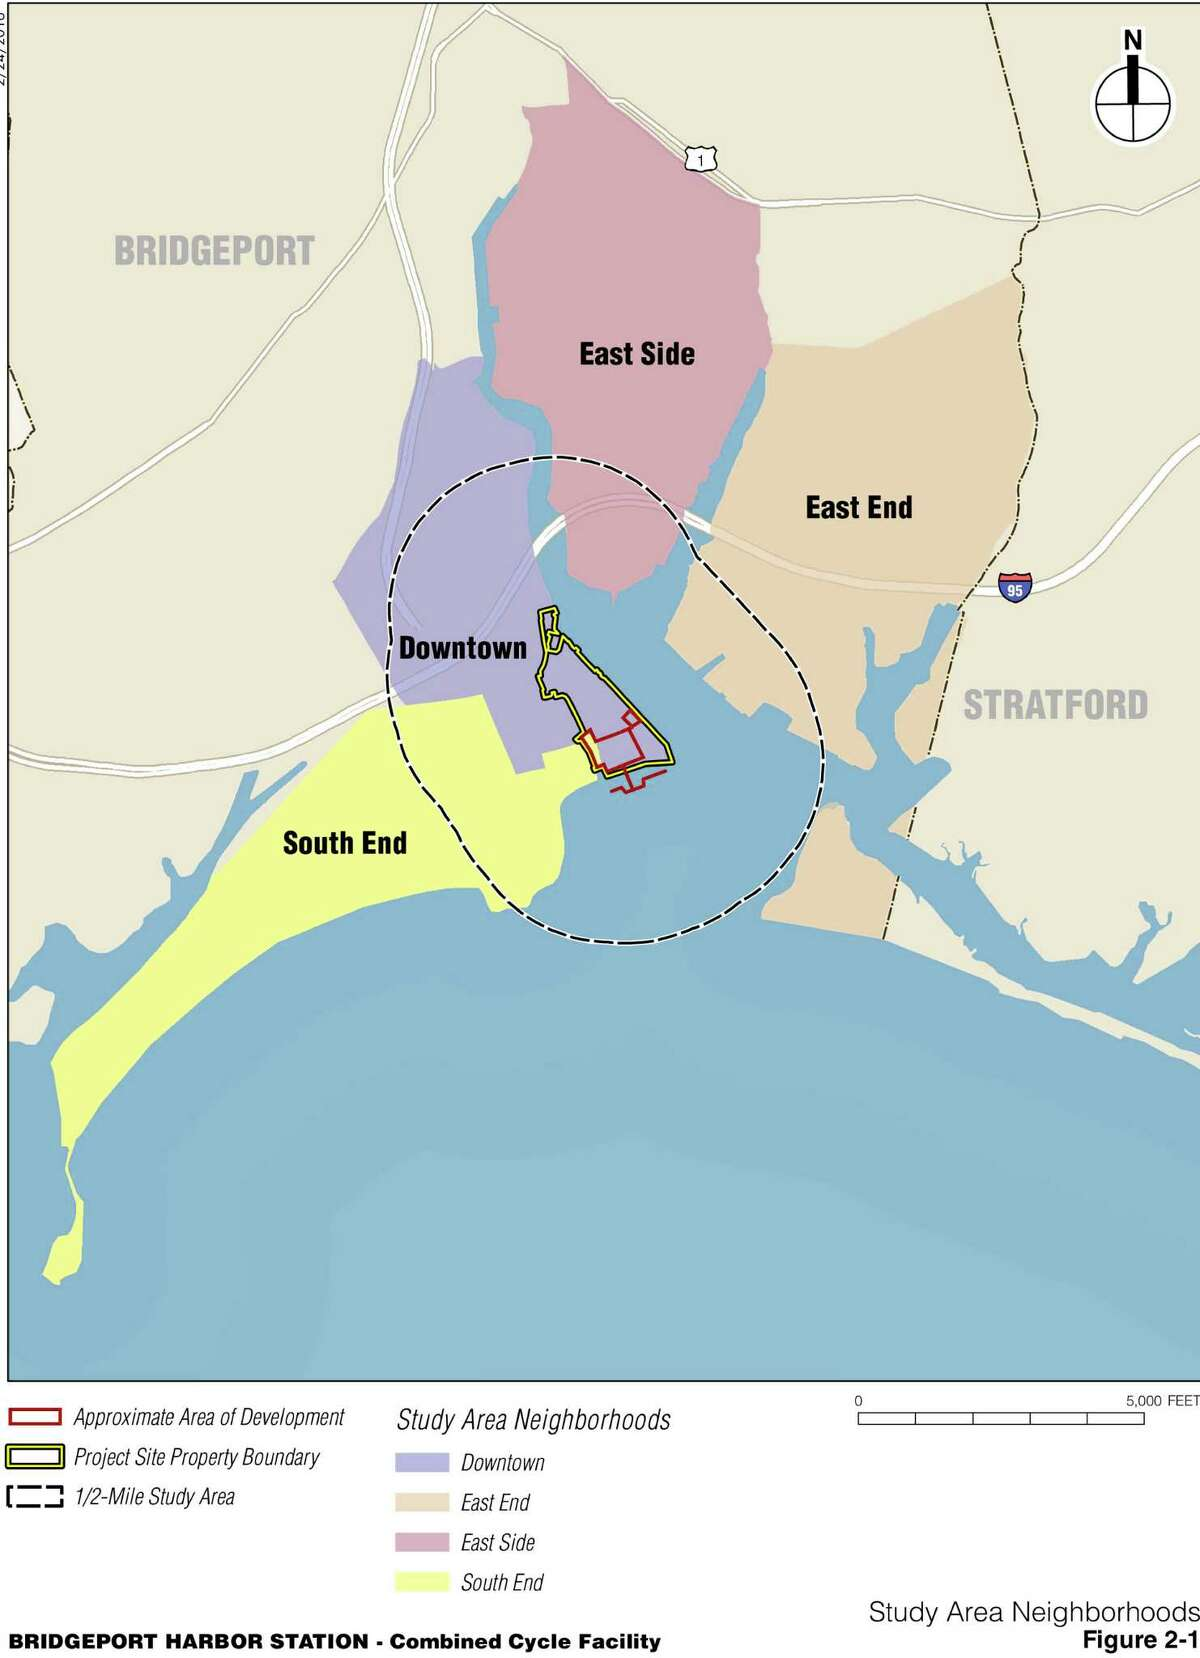 The new gas-buring plant will be built south of the existing coal-burning plant on Bridgeport Harbor.